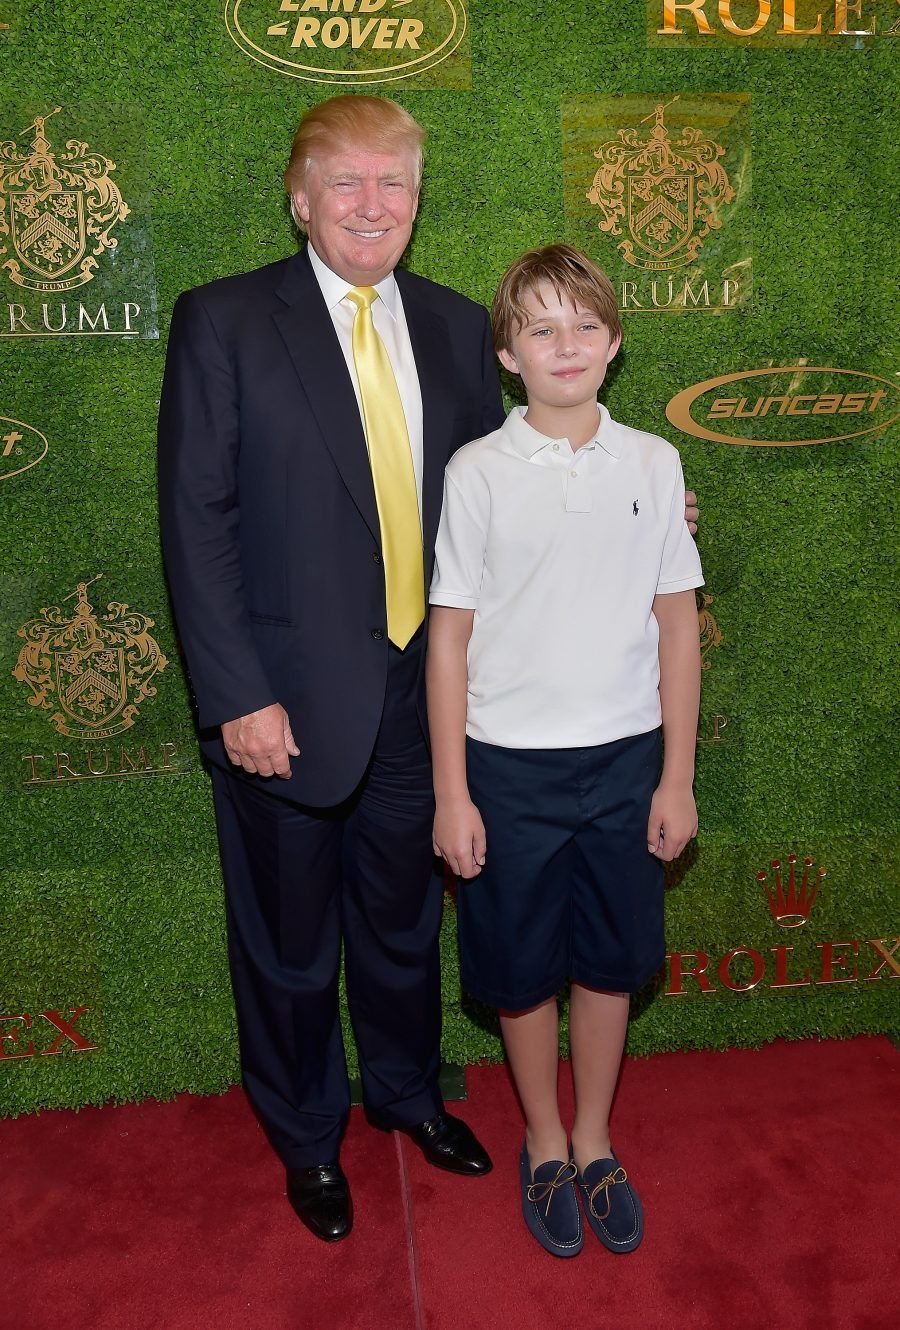 PALM BEACH, FL - JANUARY 04: Donald Trump and Barron Trump attends Trump Invitational Grand Prix Mar-a-Lago Club at The Mar-a-Largo Club on January 4, 2015 in Palm Beach, Florida. (Photo by Gustavo Caballero/Getty Images)